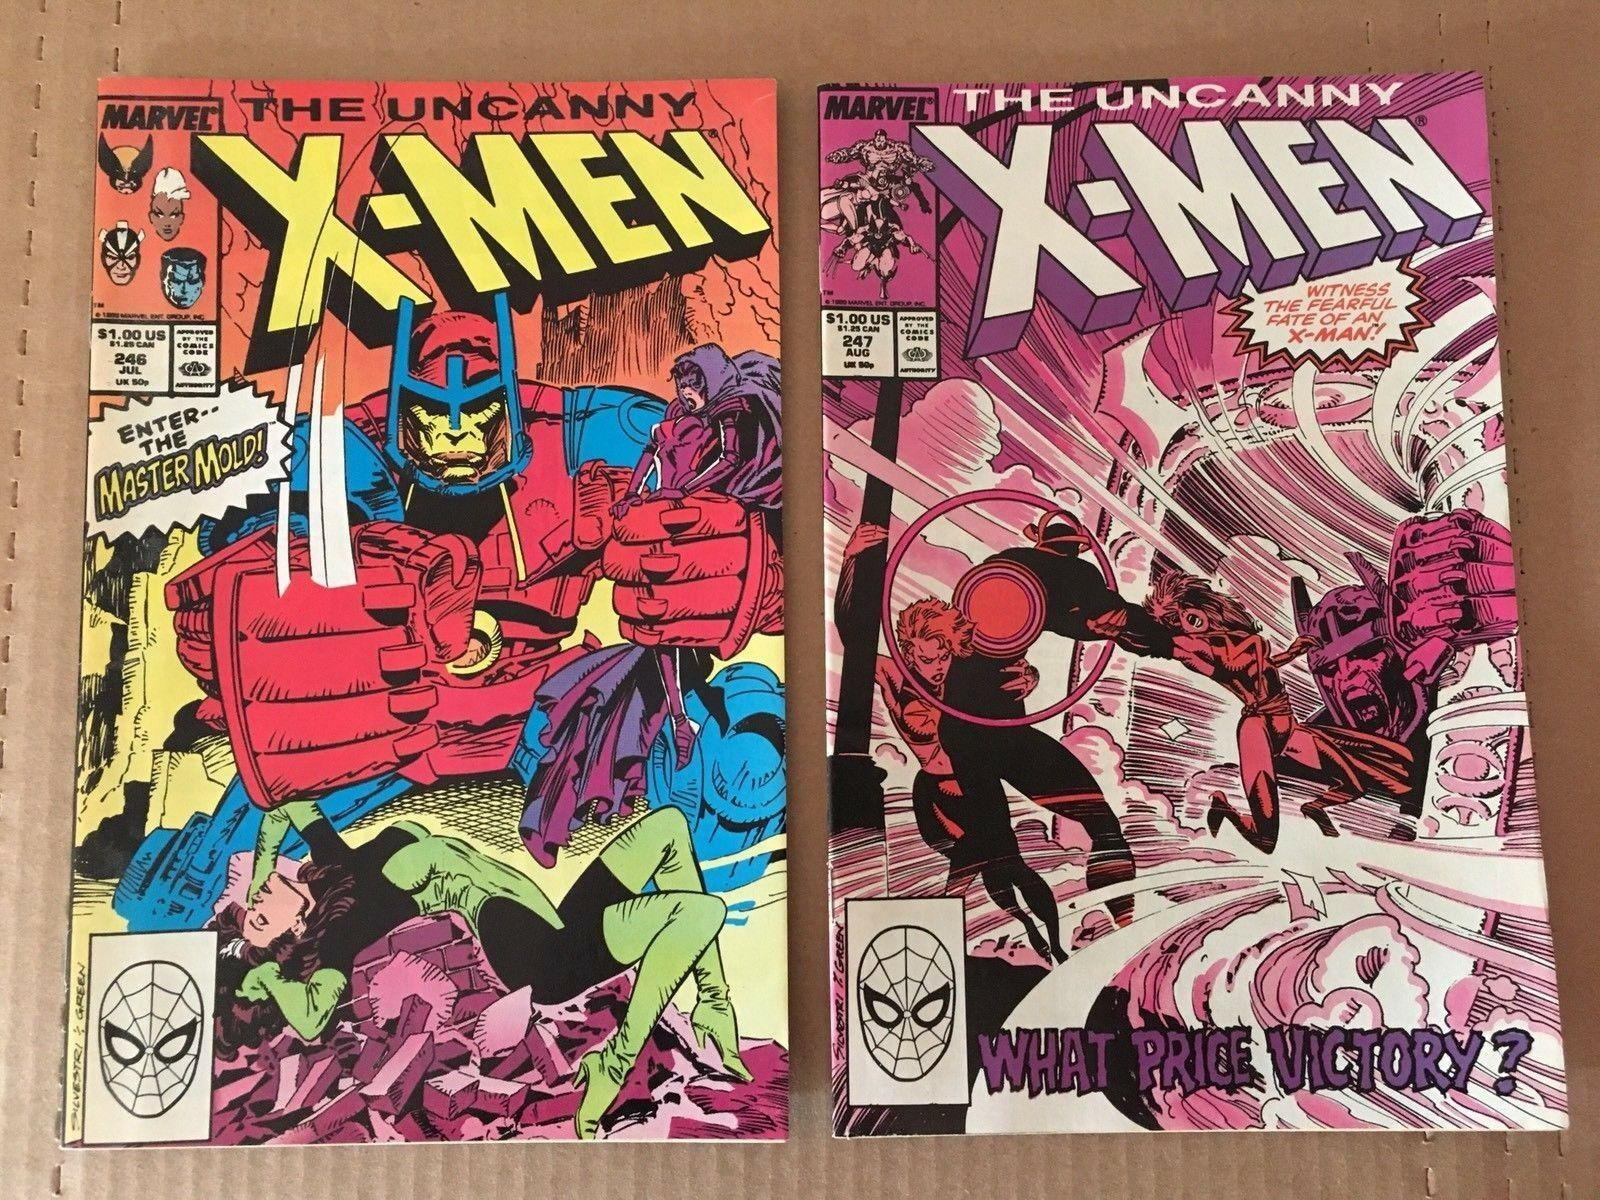 Uncanny X-Men #246 & 247 Marvel Comic Book Lot from 1988 VF+/NM Condition